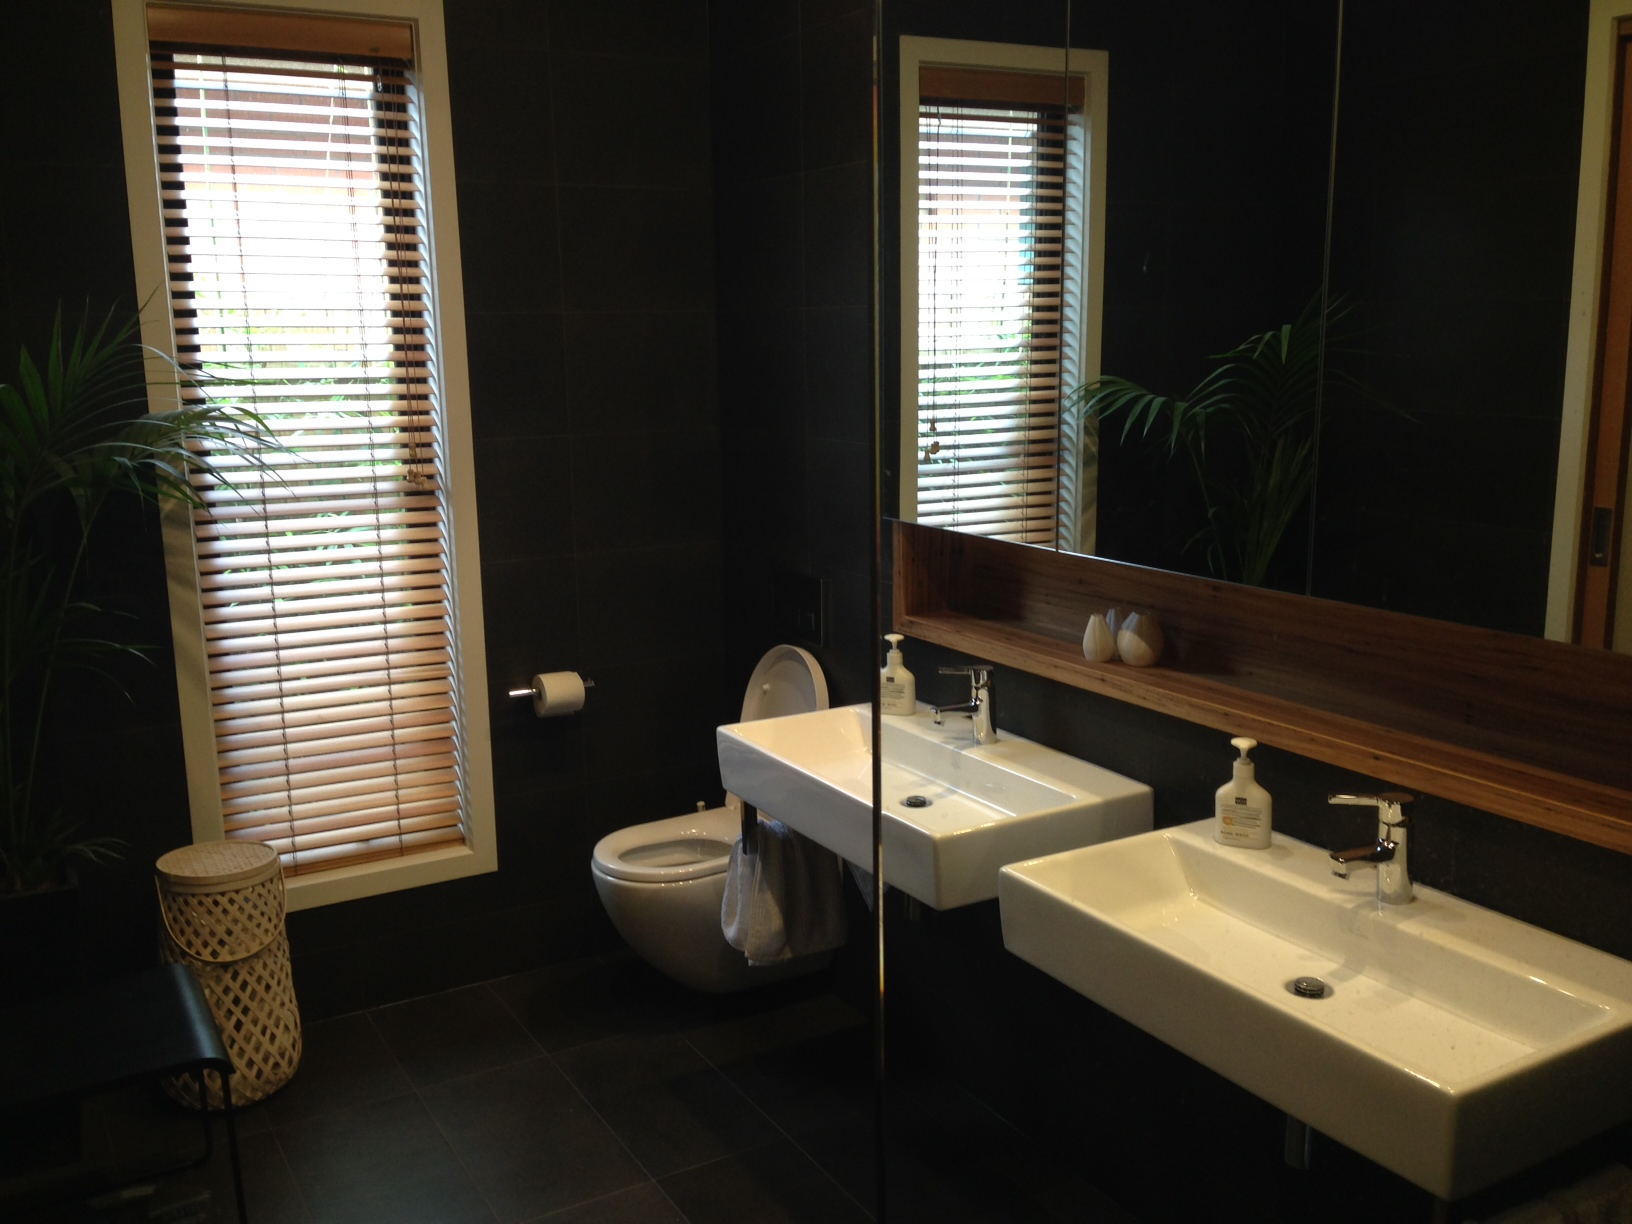 Bathroom Renovation Geelong home renovations and building extensions geelong | chris cowley